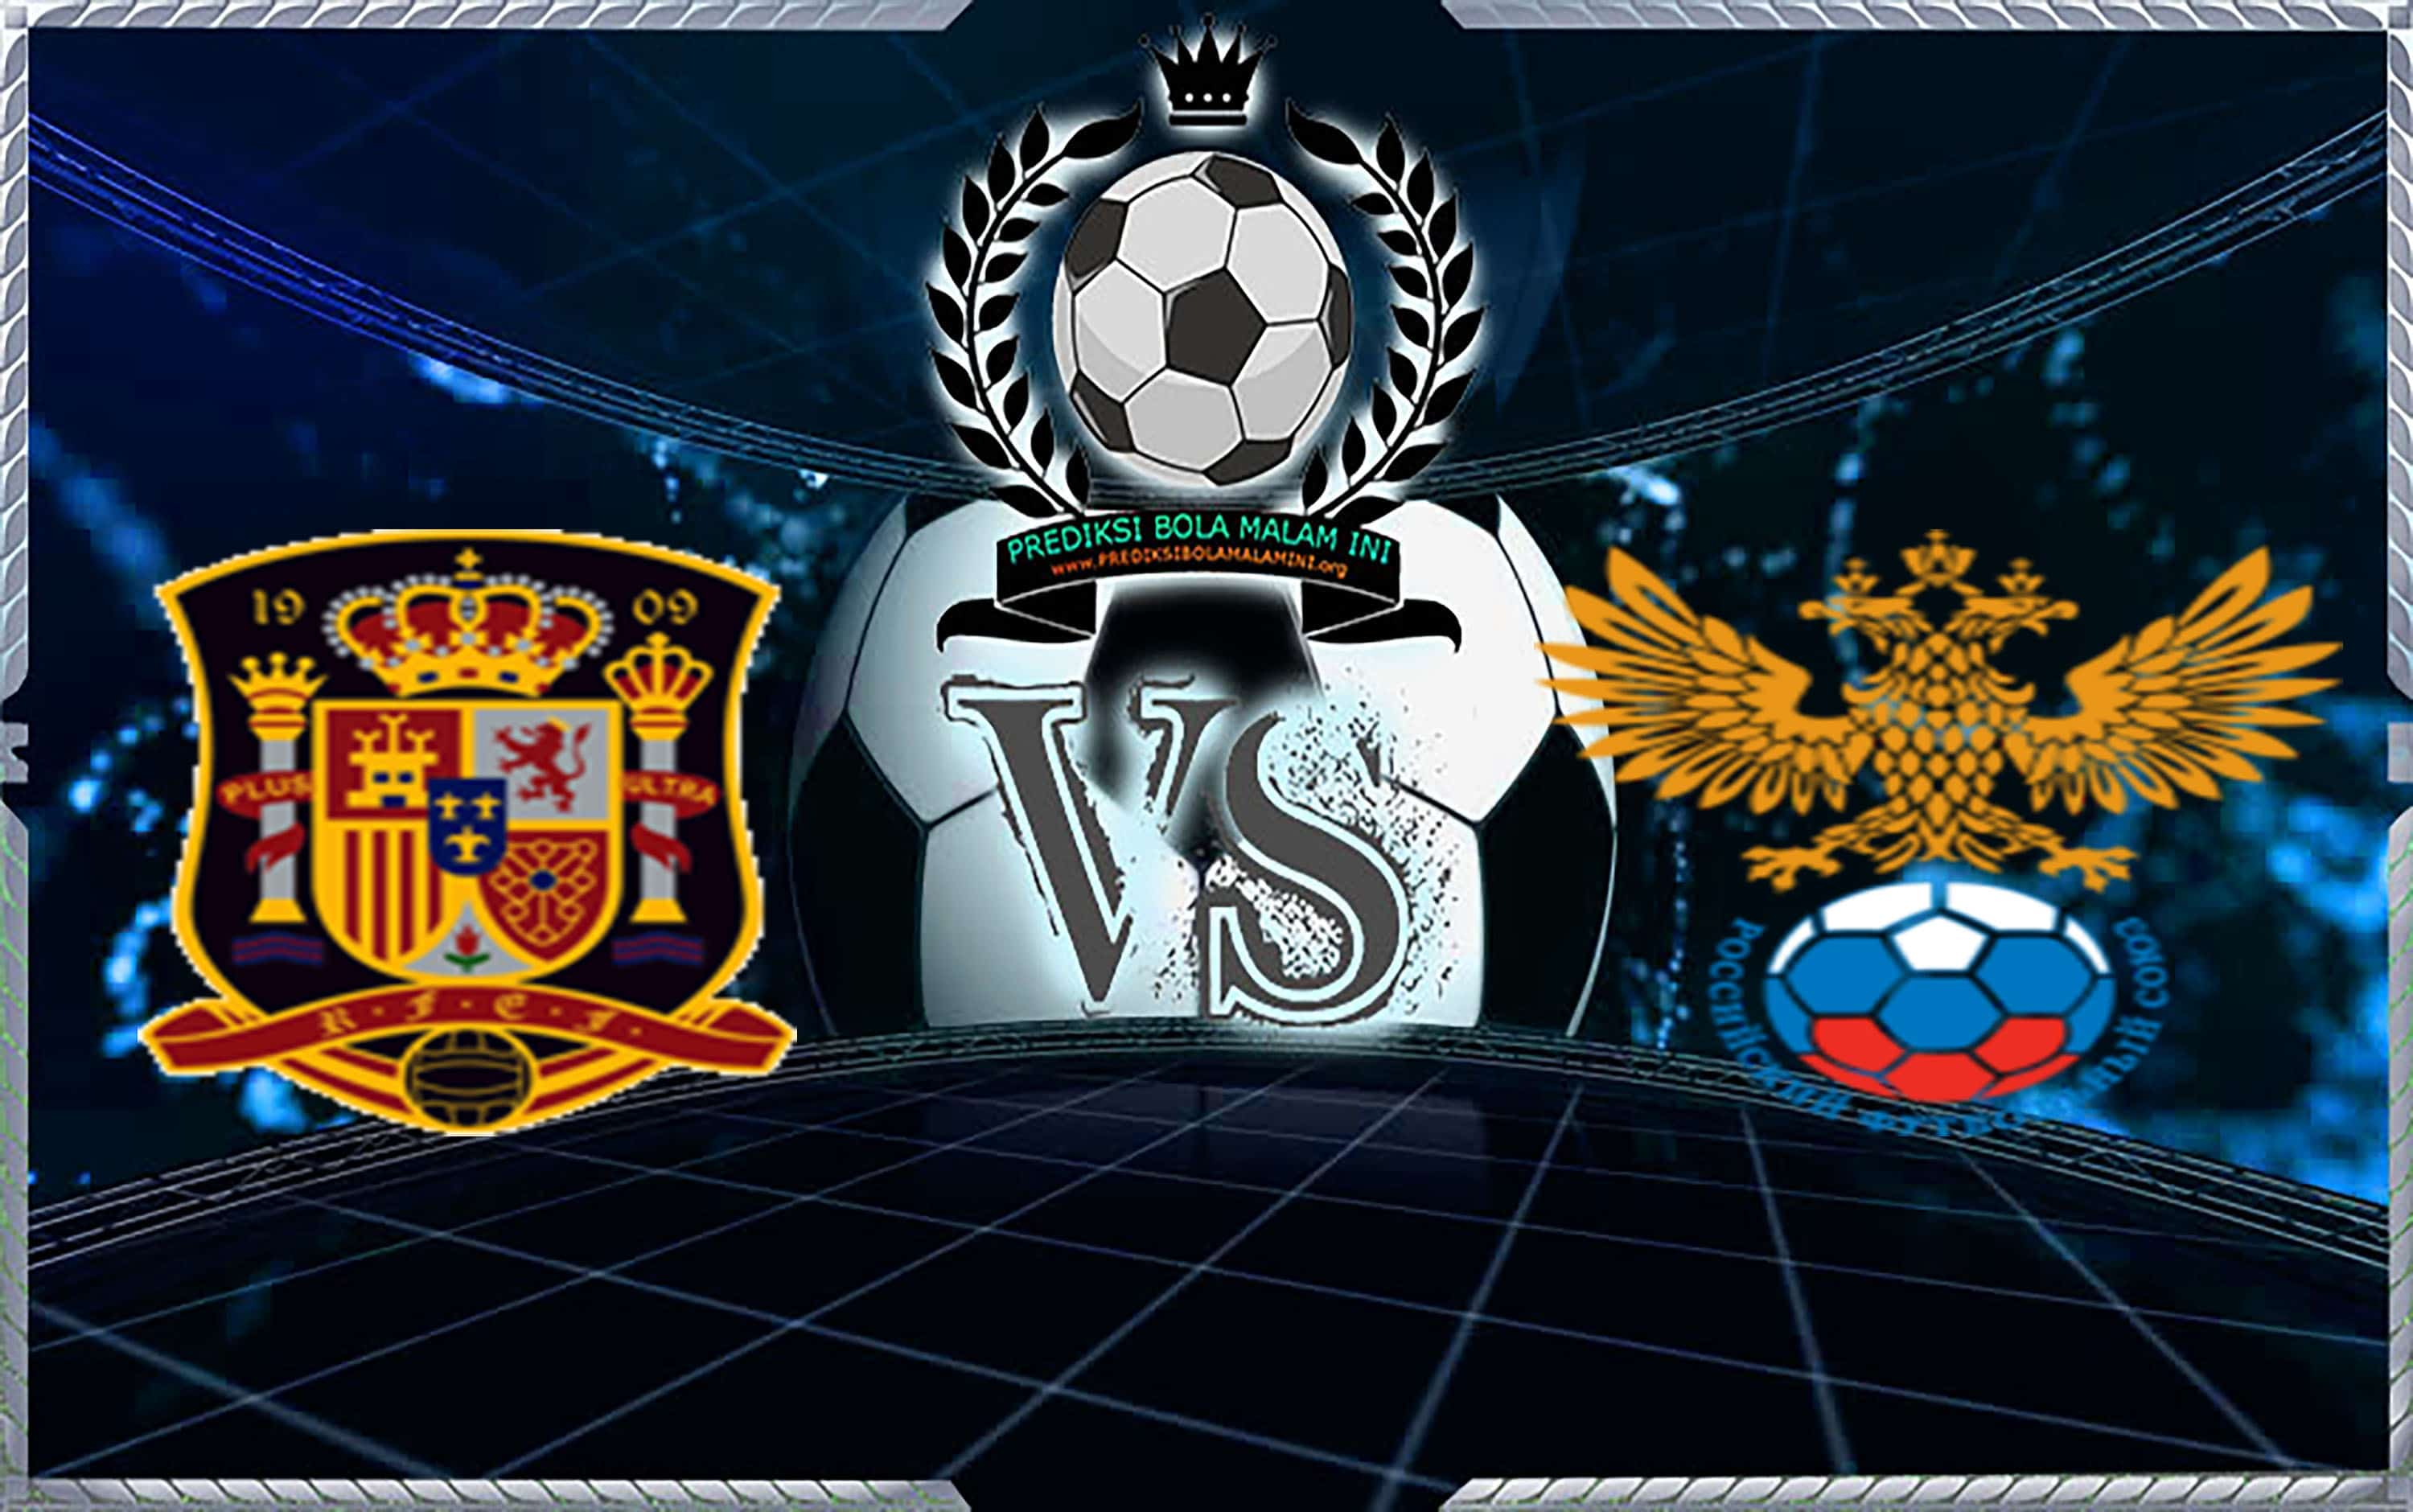 Prediksi Shoes Spanyol Vs Russia 01 Juli 2018 3 &quot;width =&quot; 881 &quot;height =&quot; 552 &quot;/&gt; </p> <p><strong> <span style=